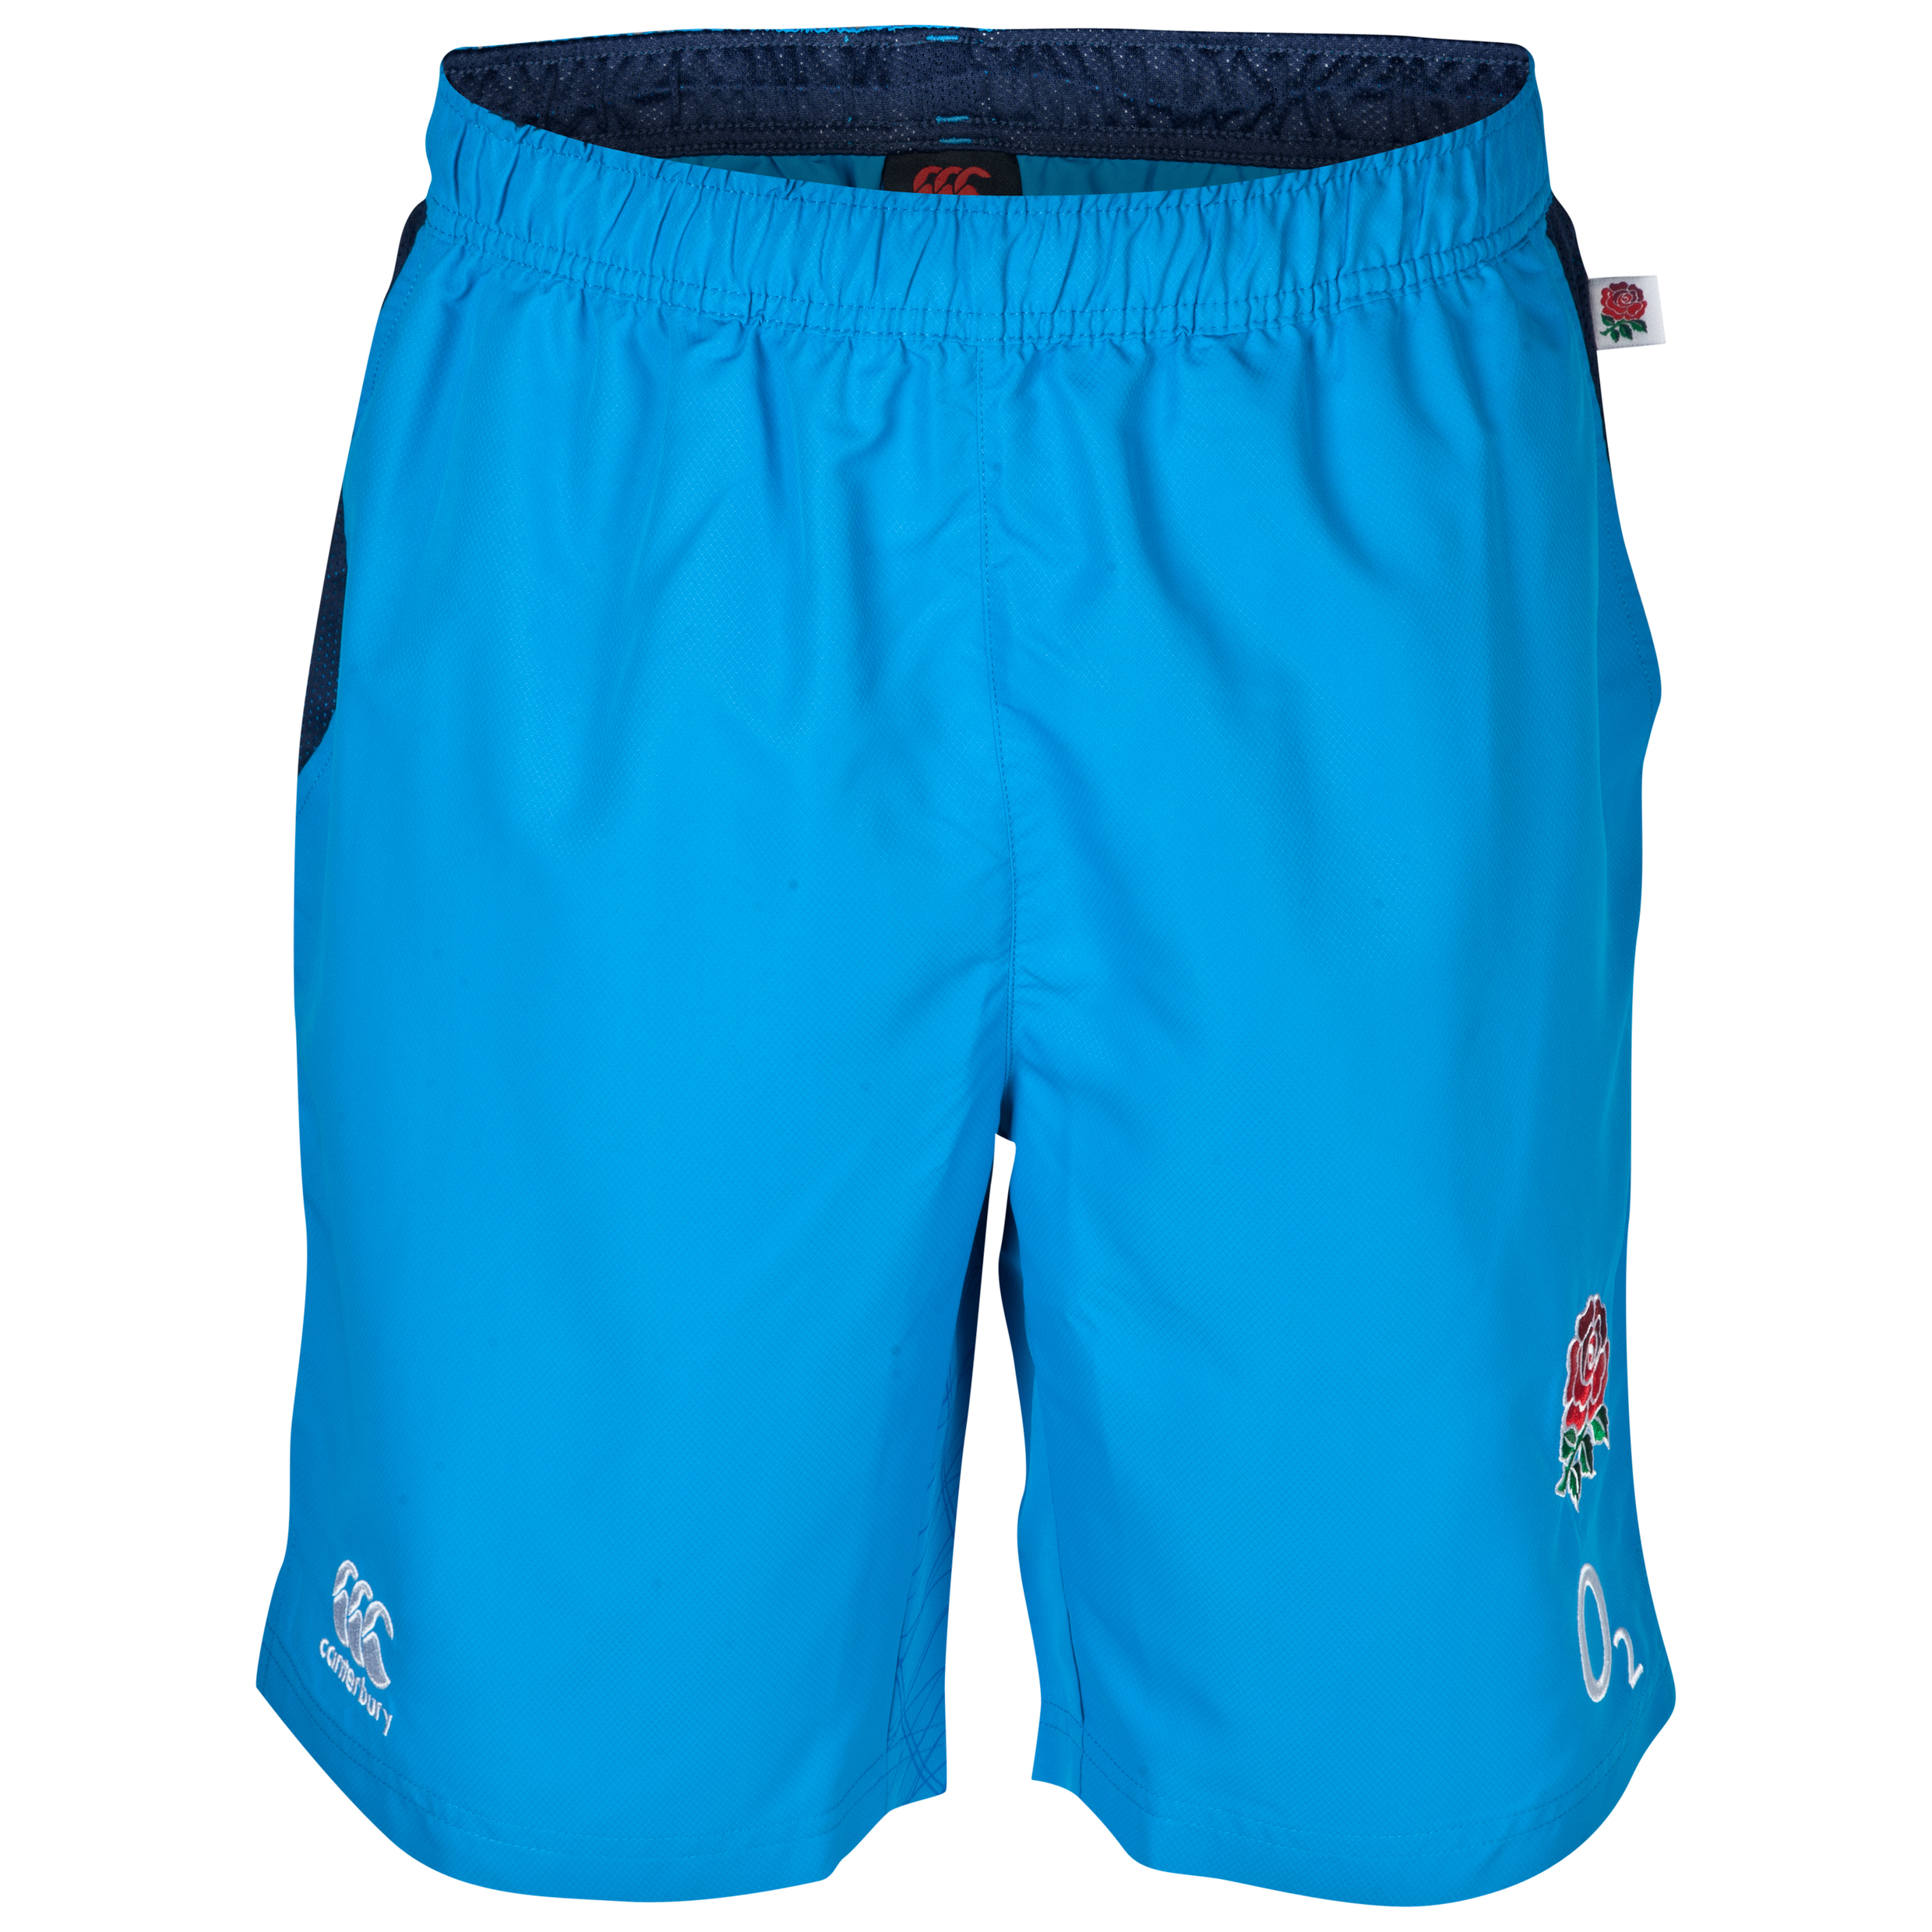 England Gym Short - Vivid Blue Blue